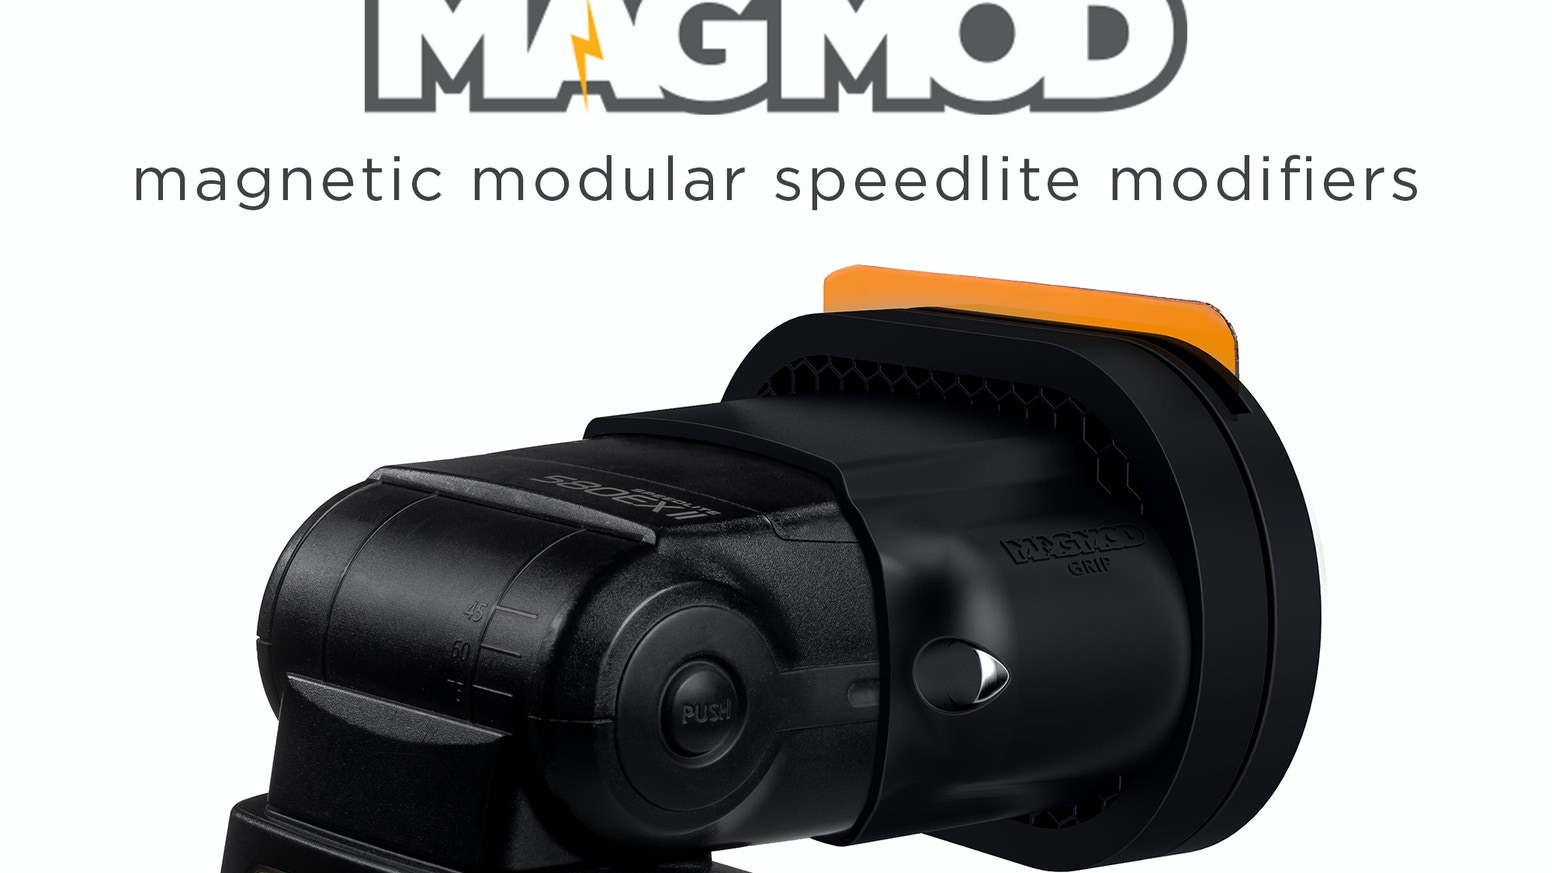 MagMod is the simplest, easiest, strongest, fastest, and sexiest speedlite modifier system for Canon + Nikon hot-shoe flashes, period.